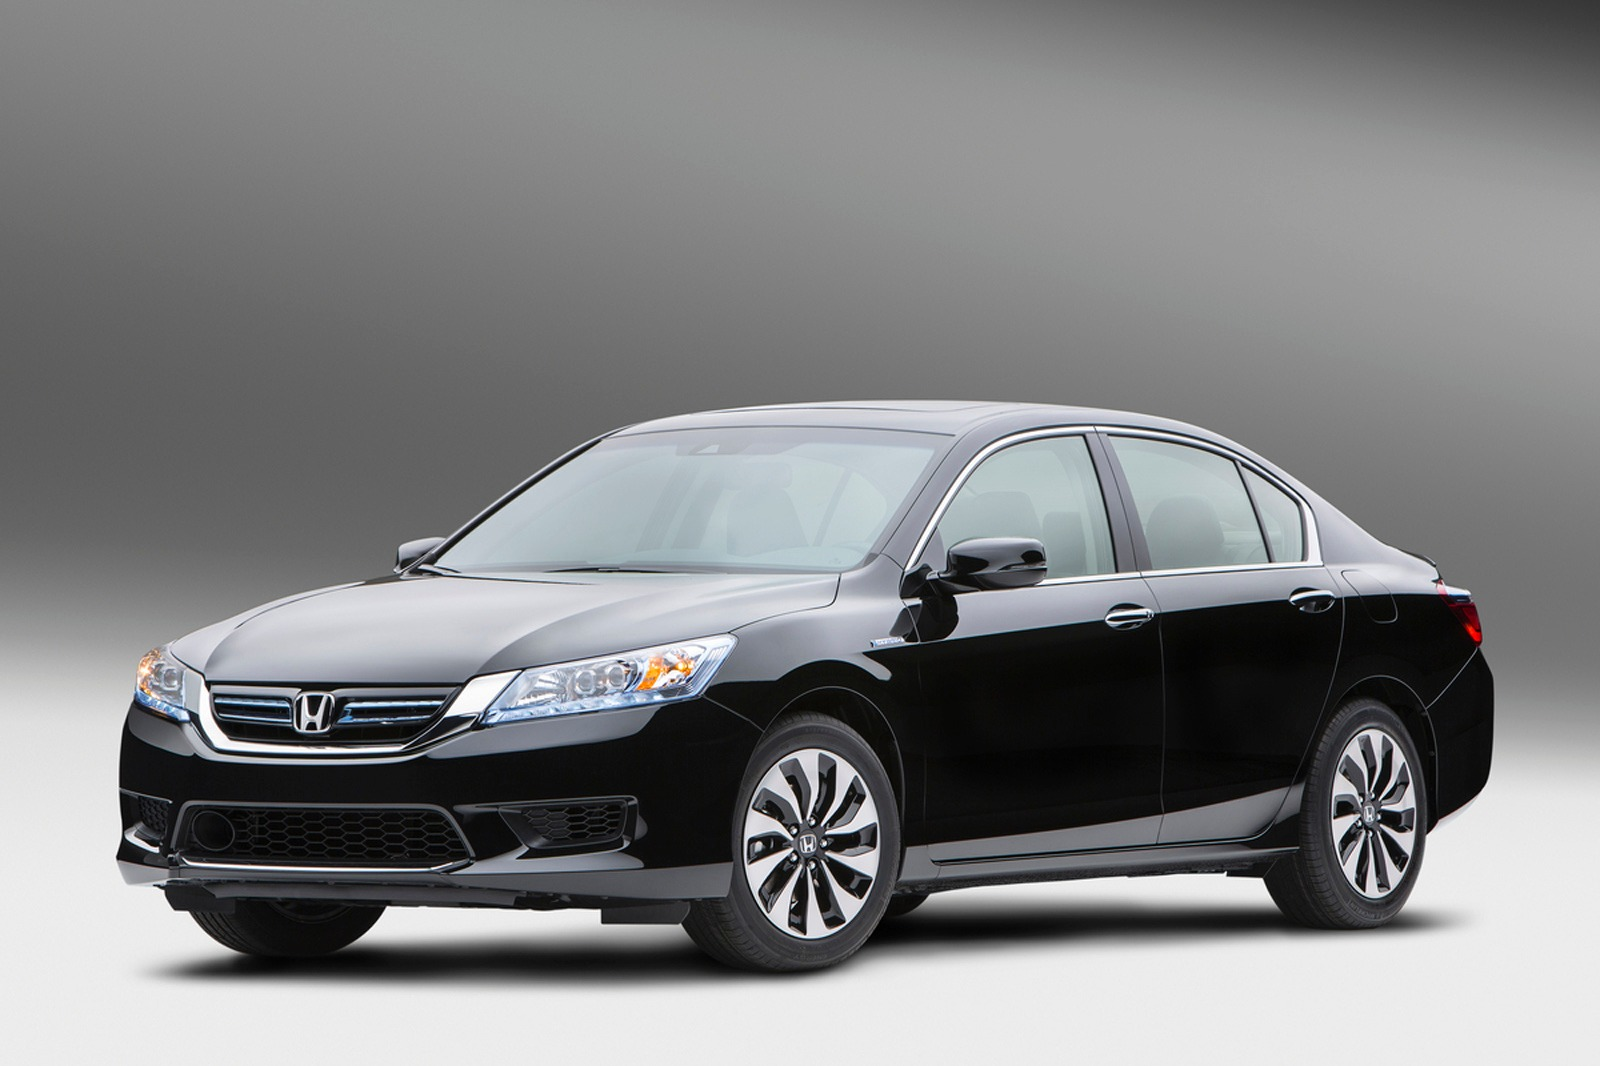 Honda Accord Hybrid #6